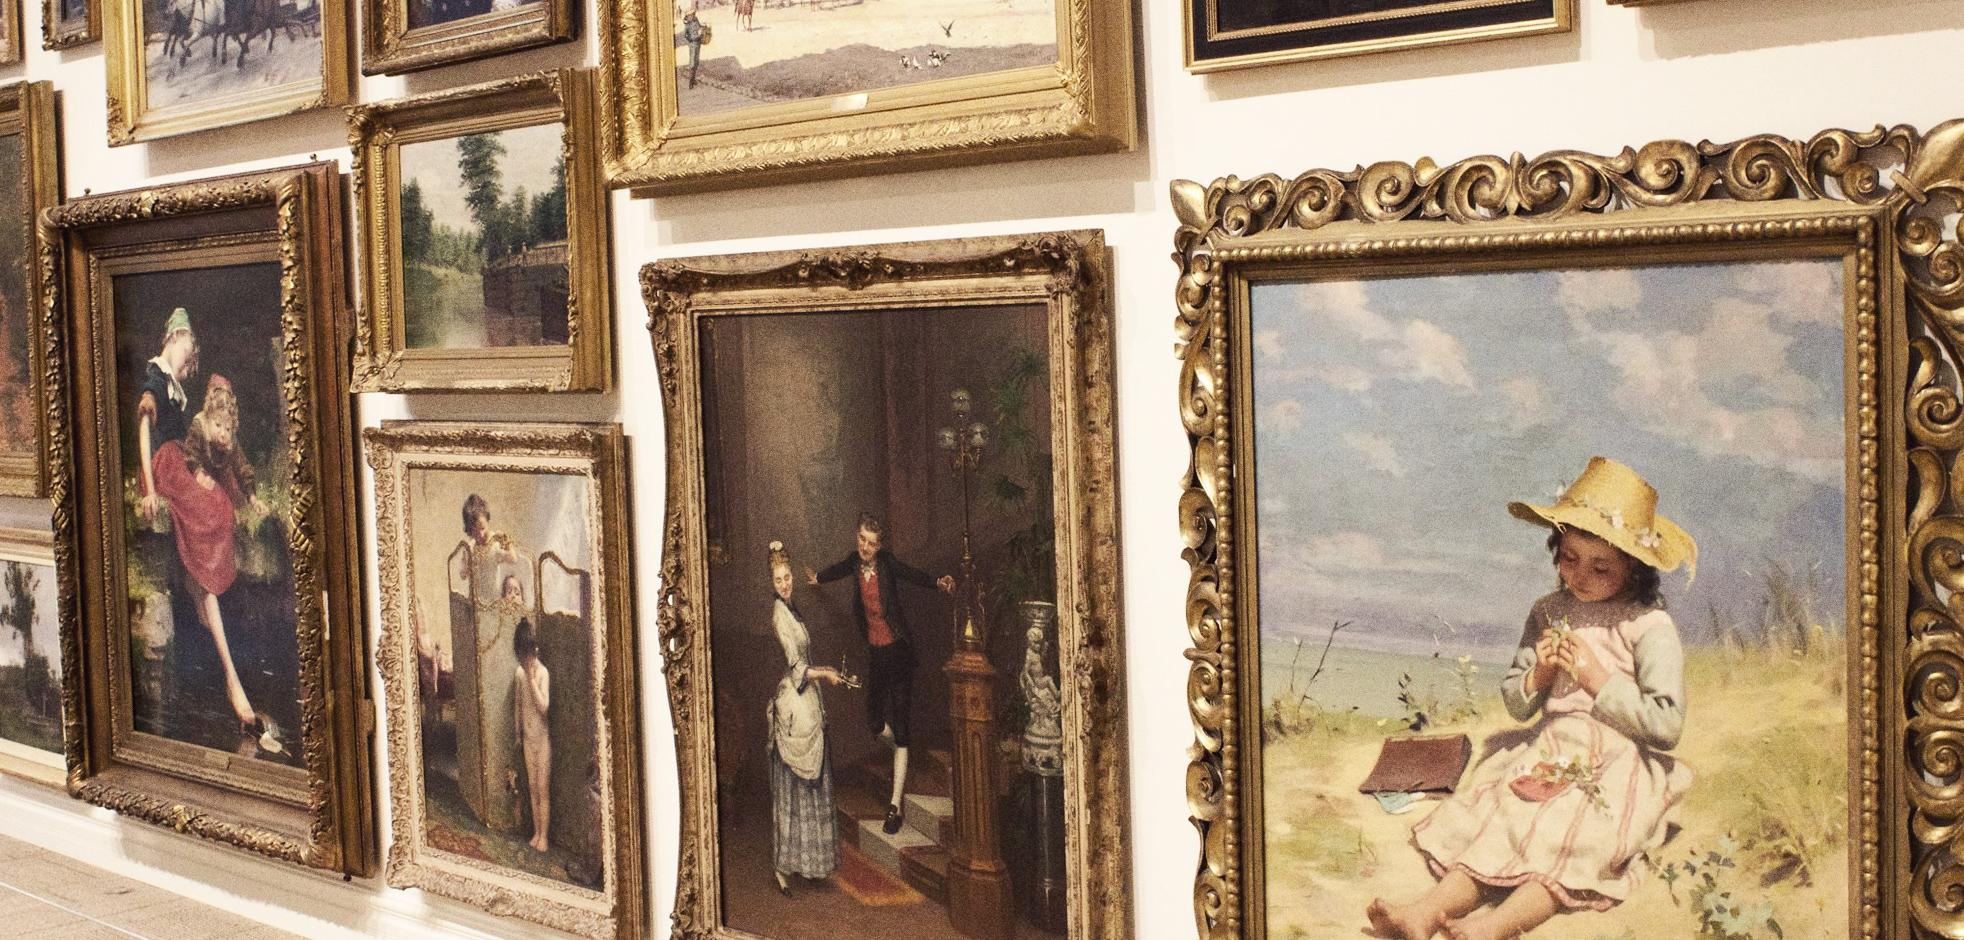 Various historical paintings from Paul Peel, the Group of Seven and other artists on display at at Museum London